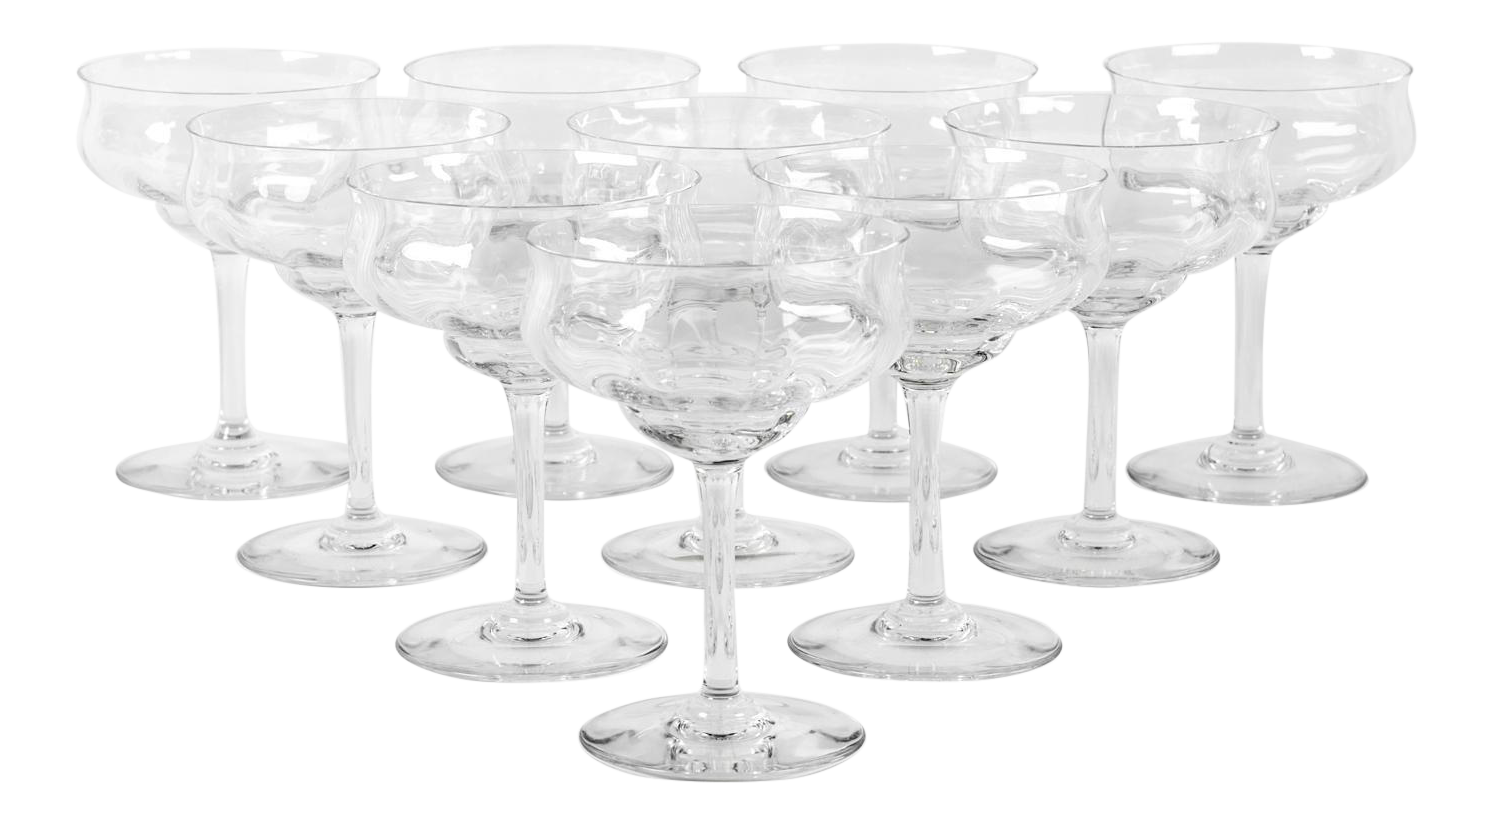 Vintage Baccarat Crystal Coupe Glasses Set Of 10 Chairish